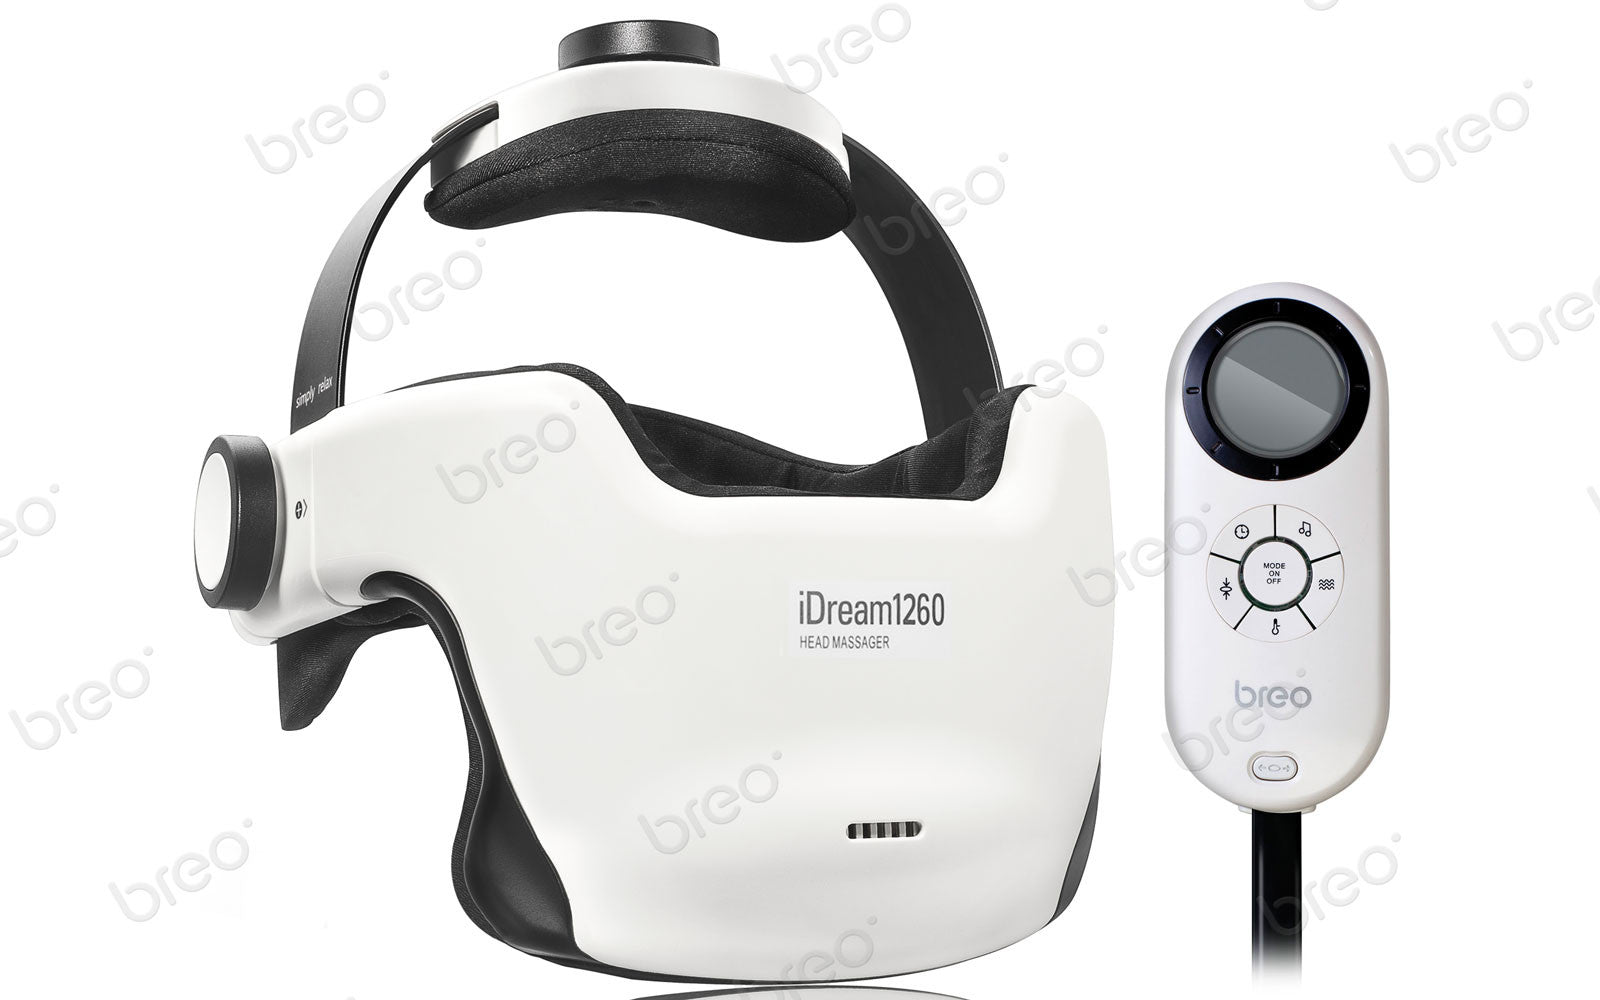 Breo iDream1260 Eye & Head Massager - Breo-USA